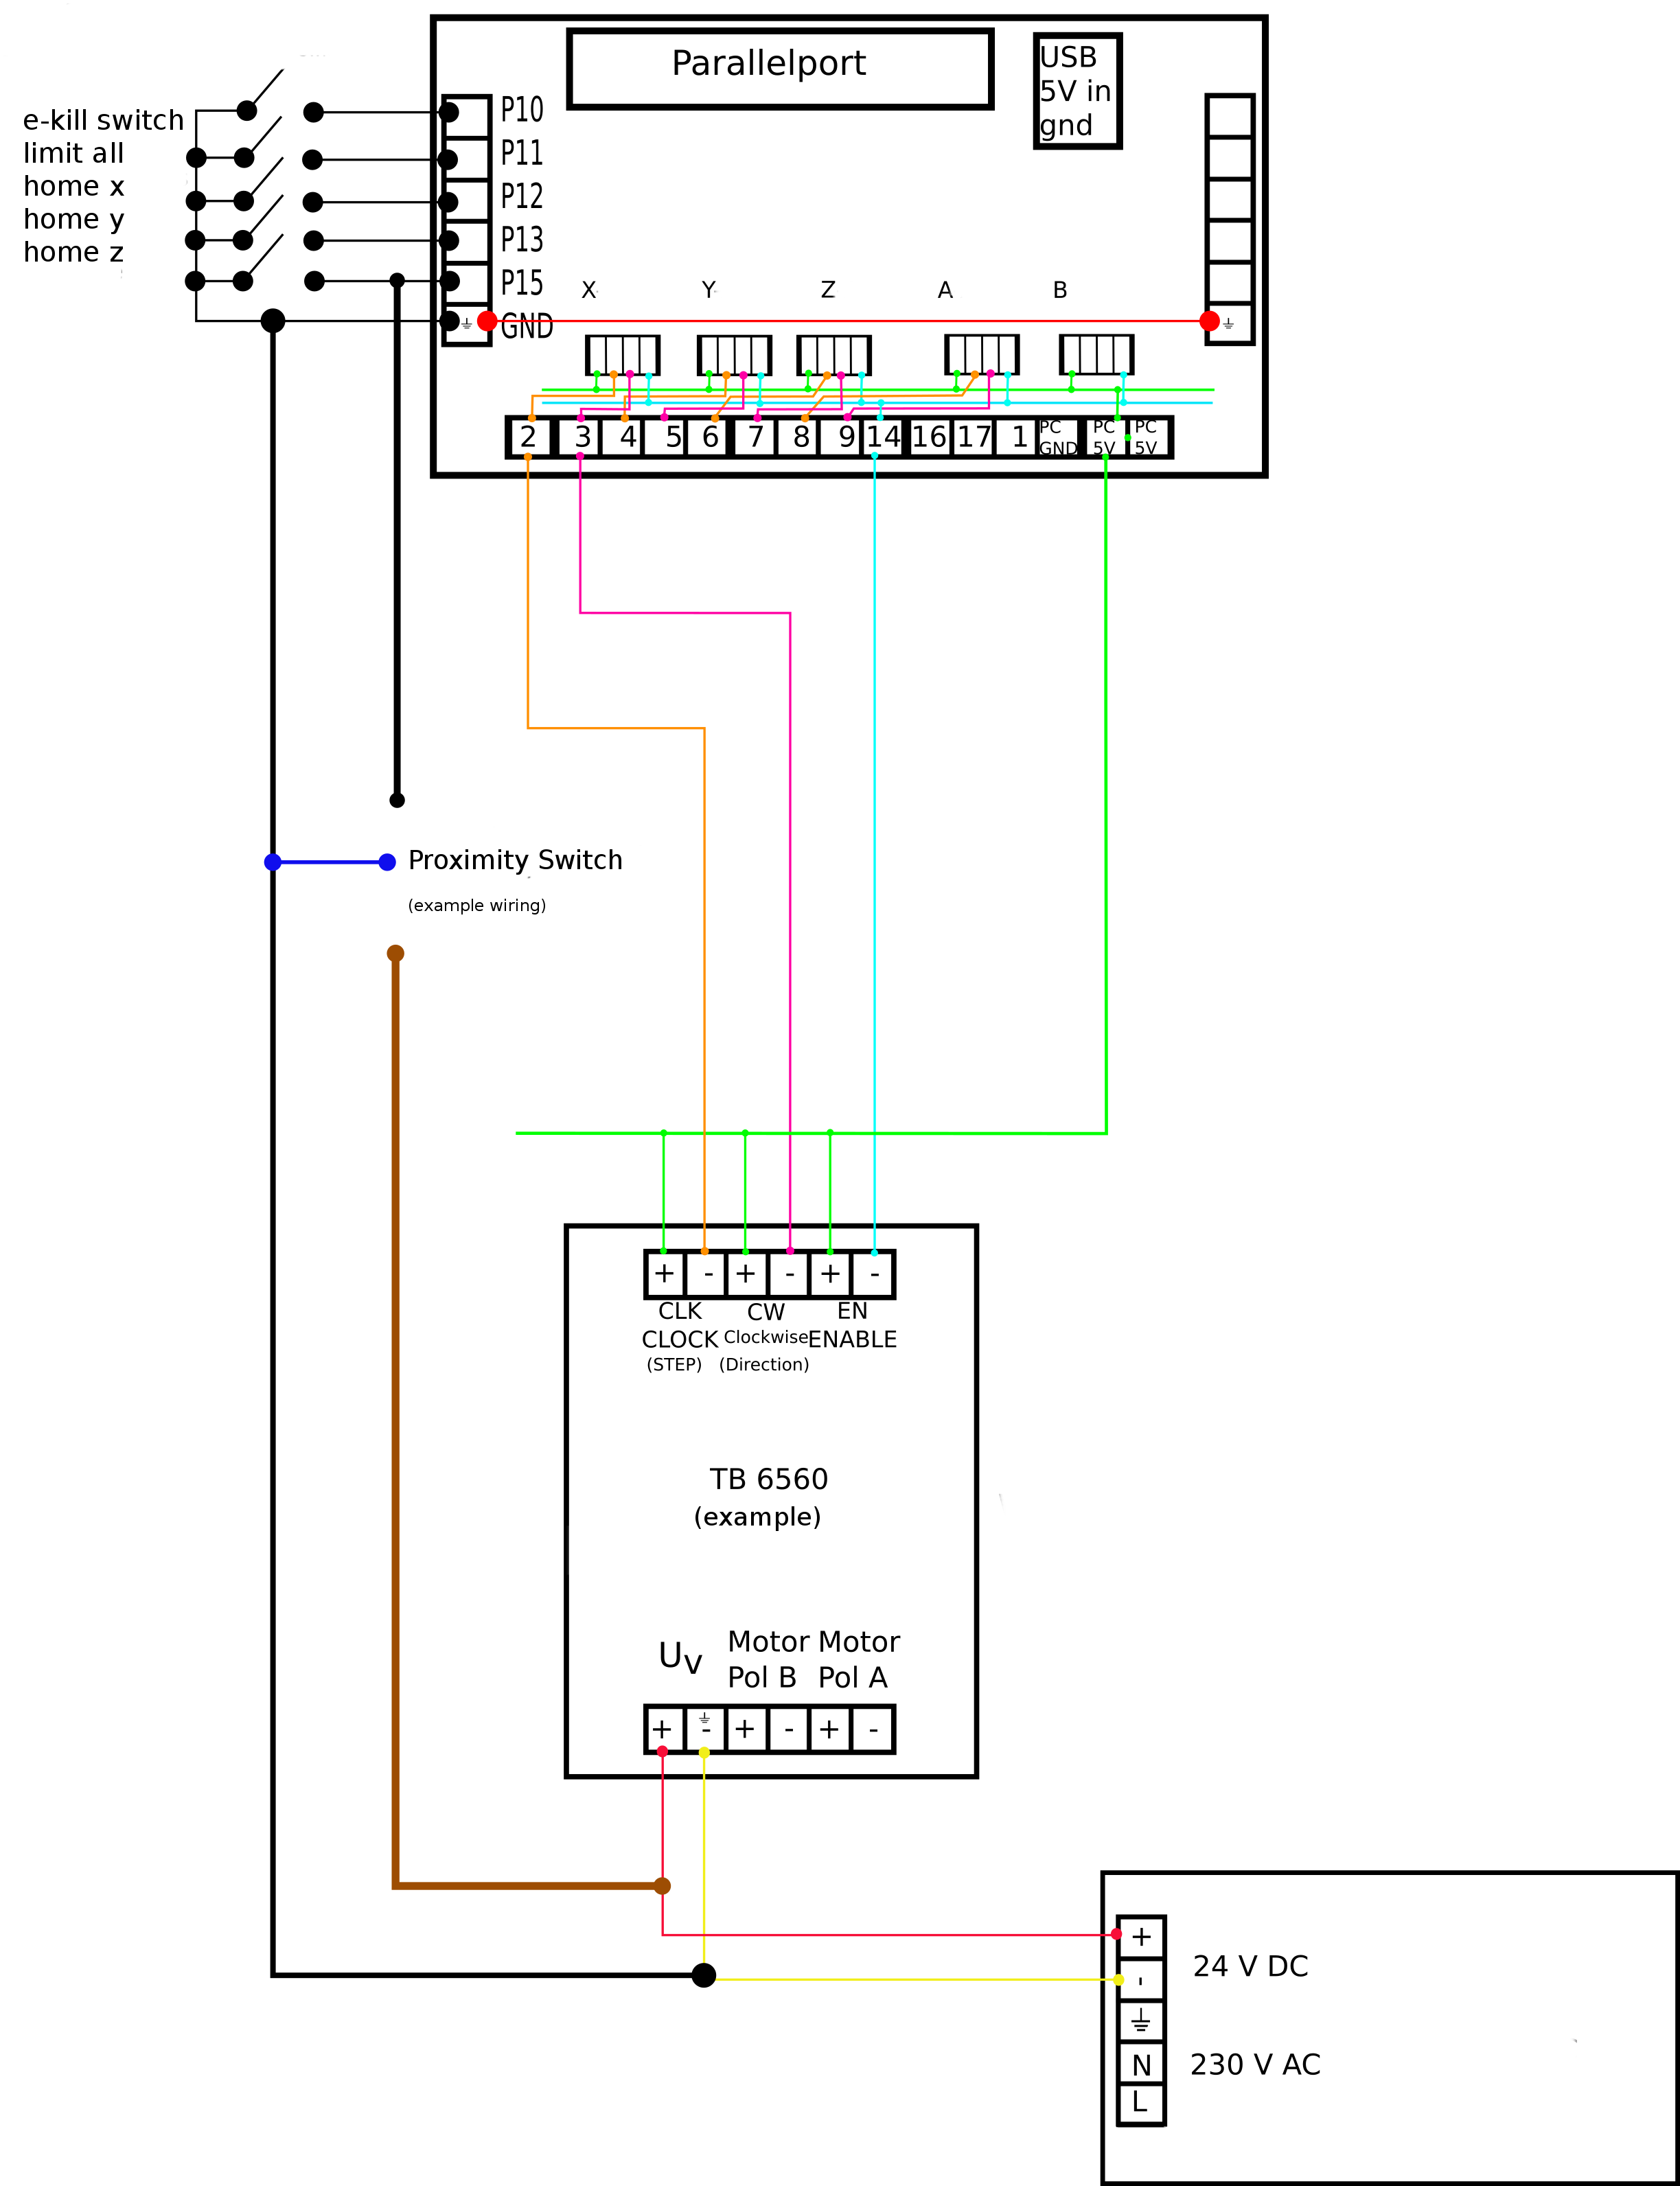 Prox Wiring Diagram Great Design Of Proximity Switch Schematic Ac Inductive Pressure Hid Basic Electrical Diagrams